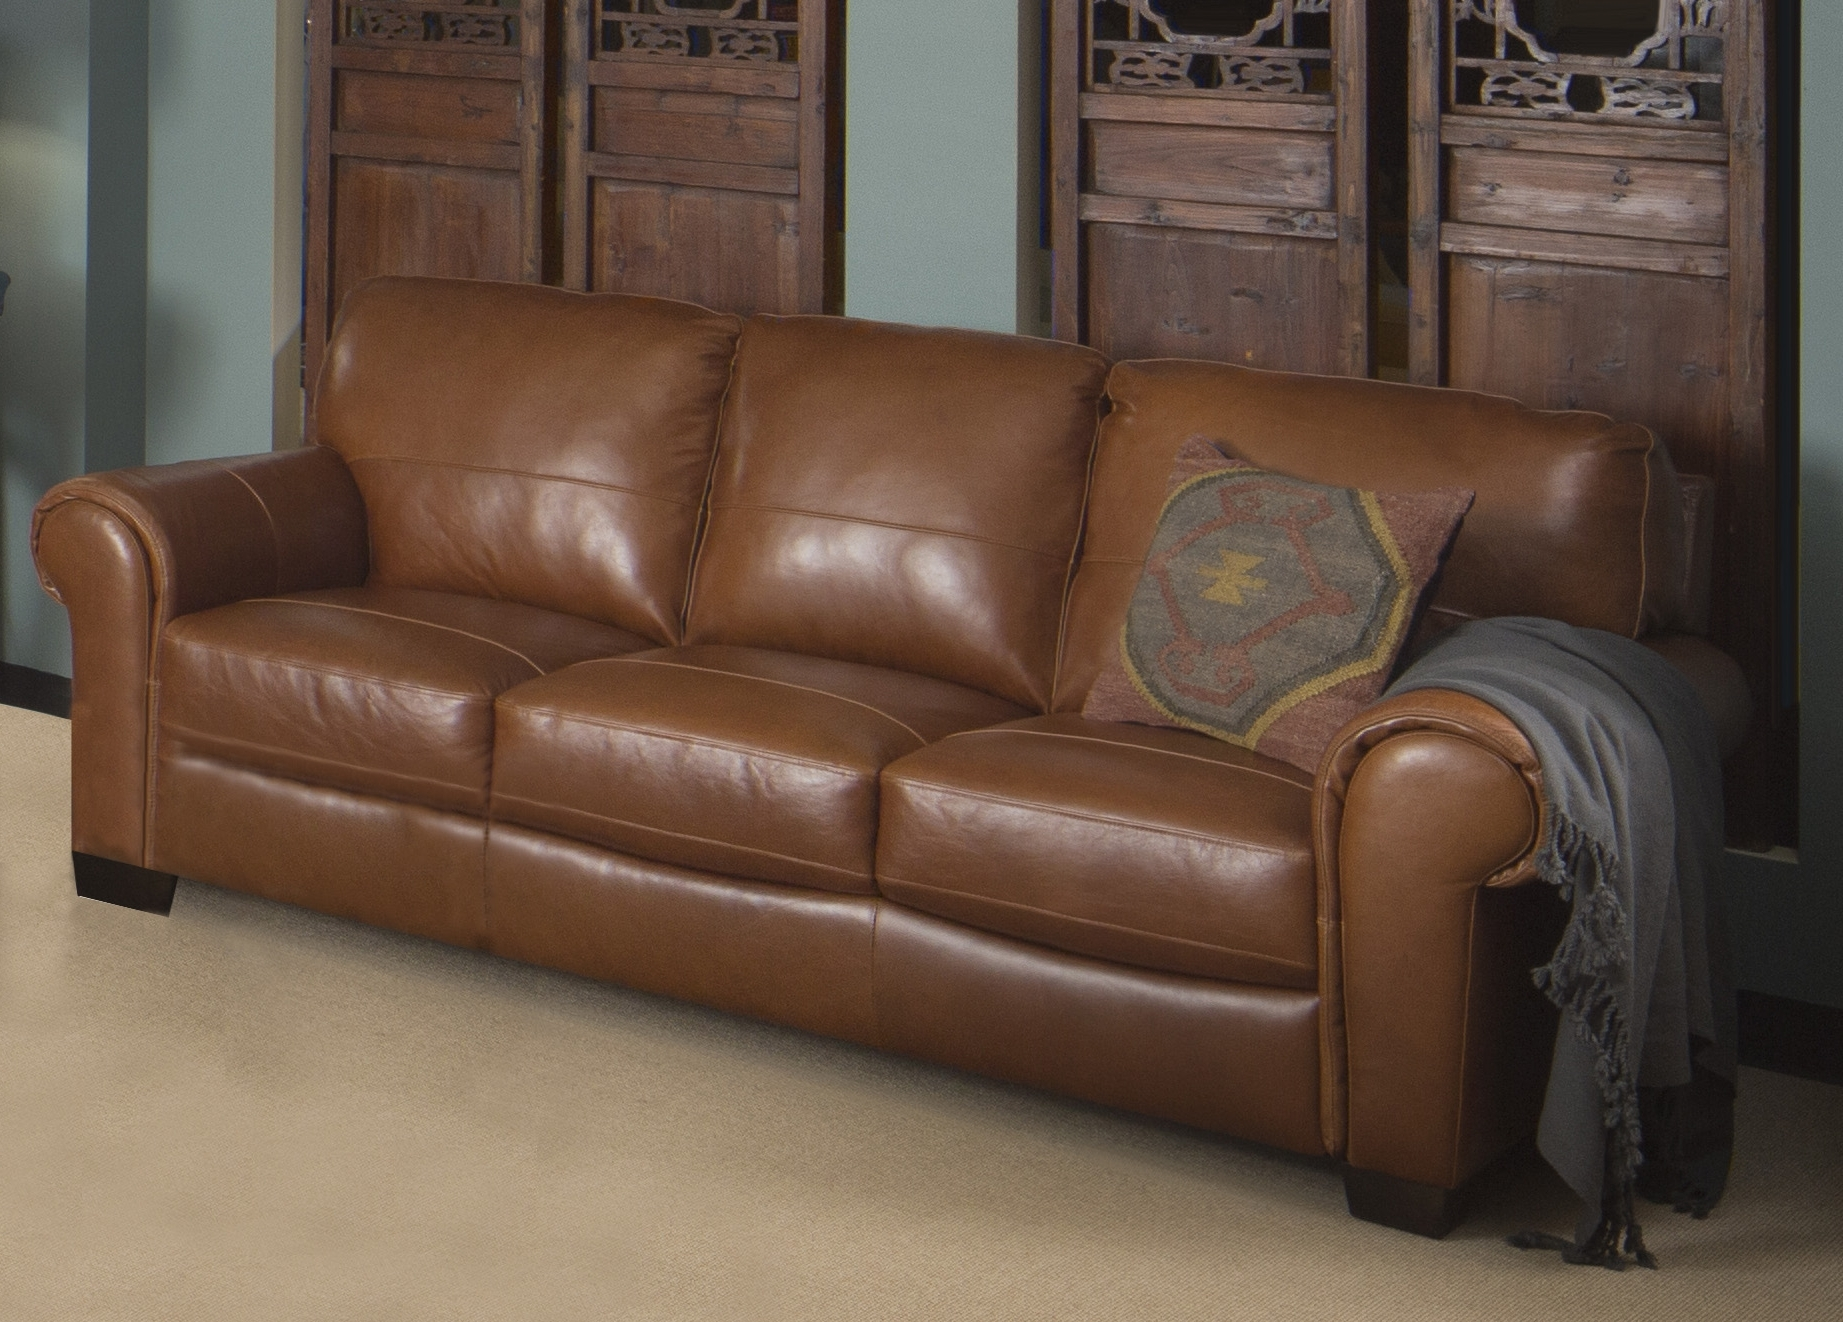 My Dream House With Leather Lounge Sofas (View 3 of 20)